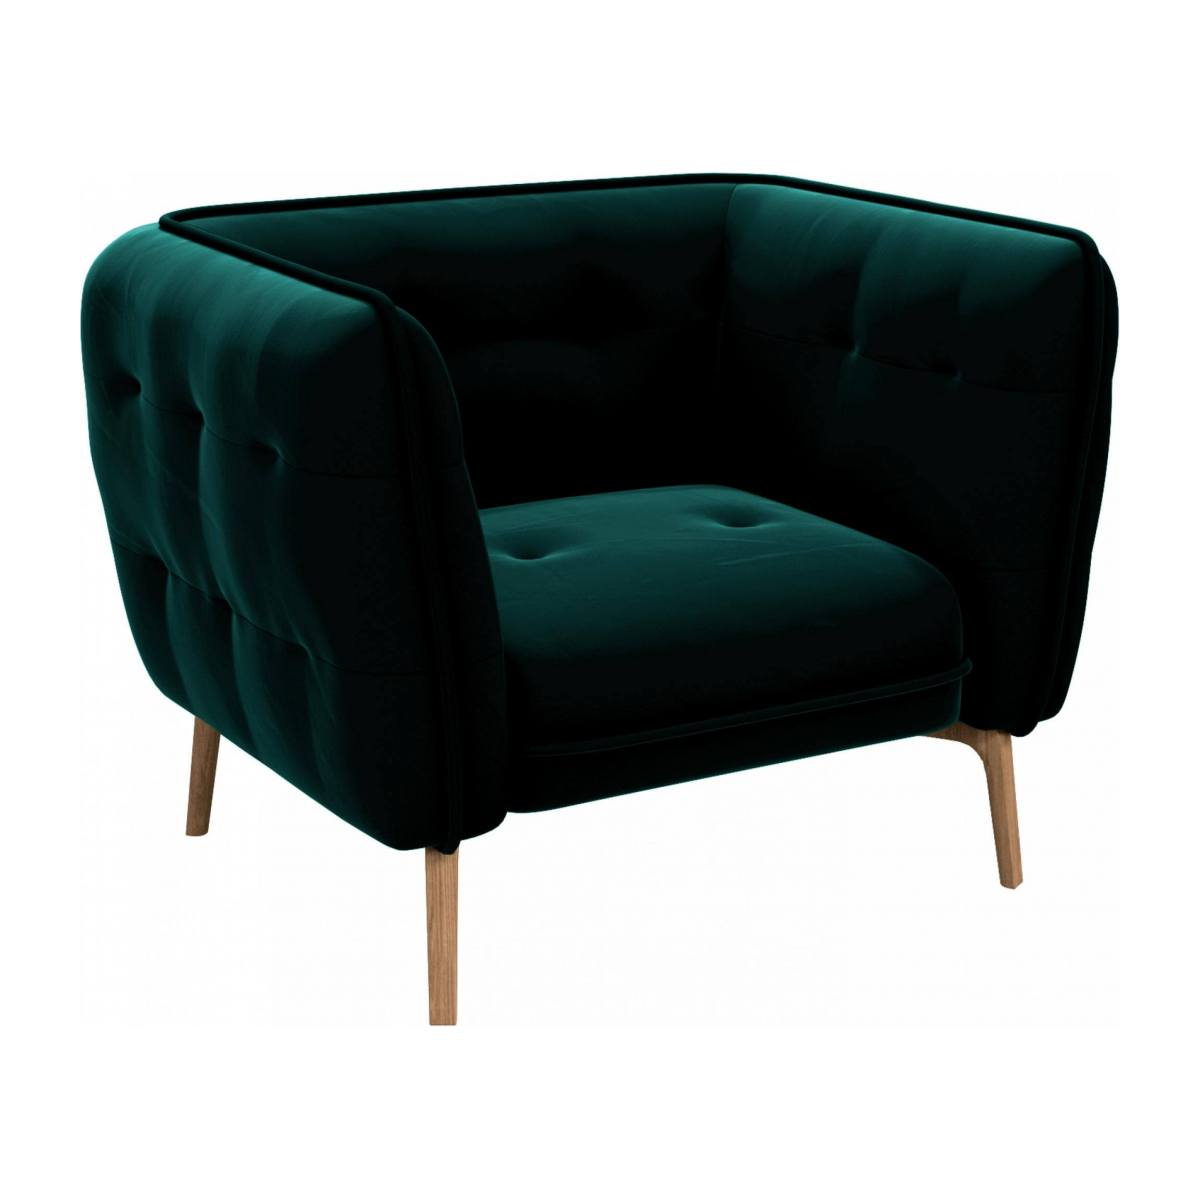 Armchair in Super Velvet fabric, petrol blue and natural oak feet n°2